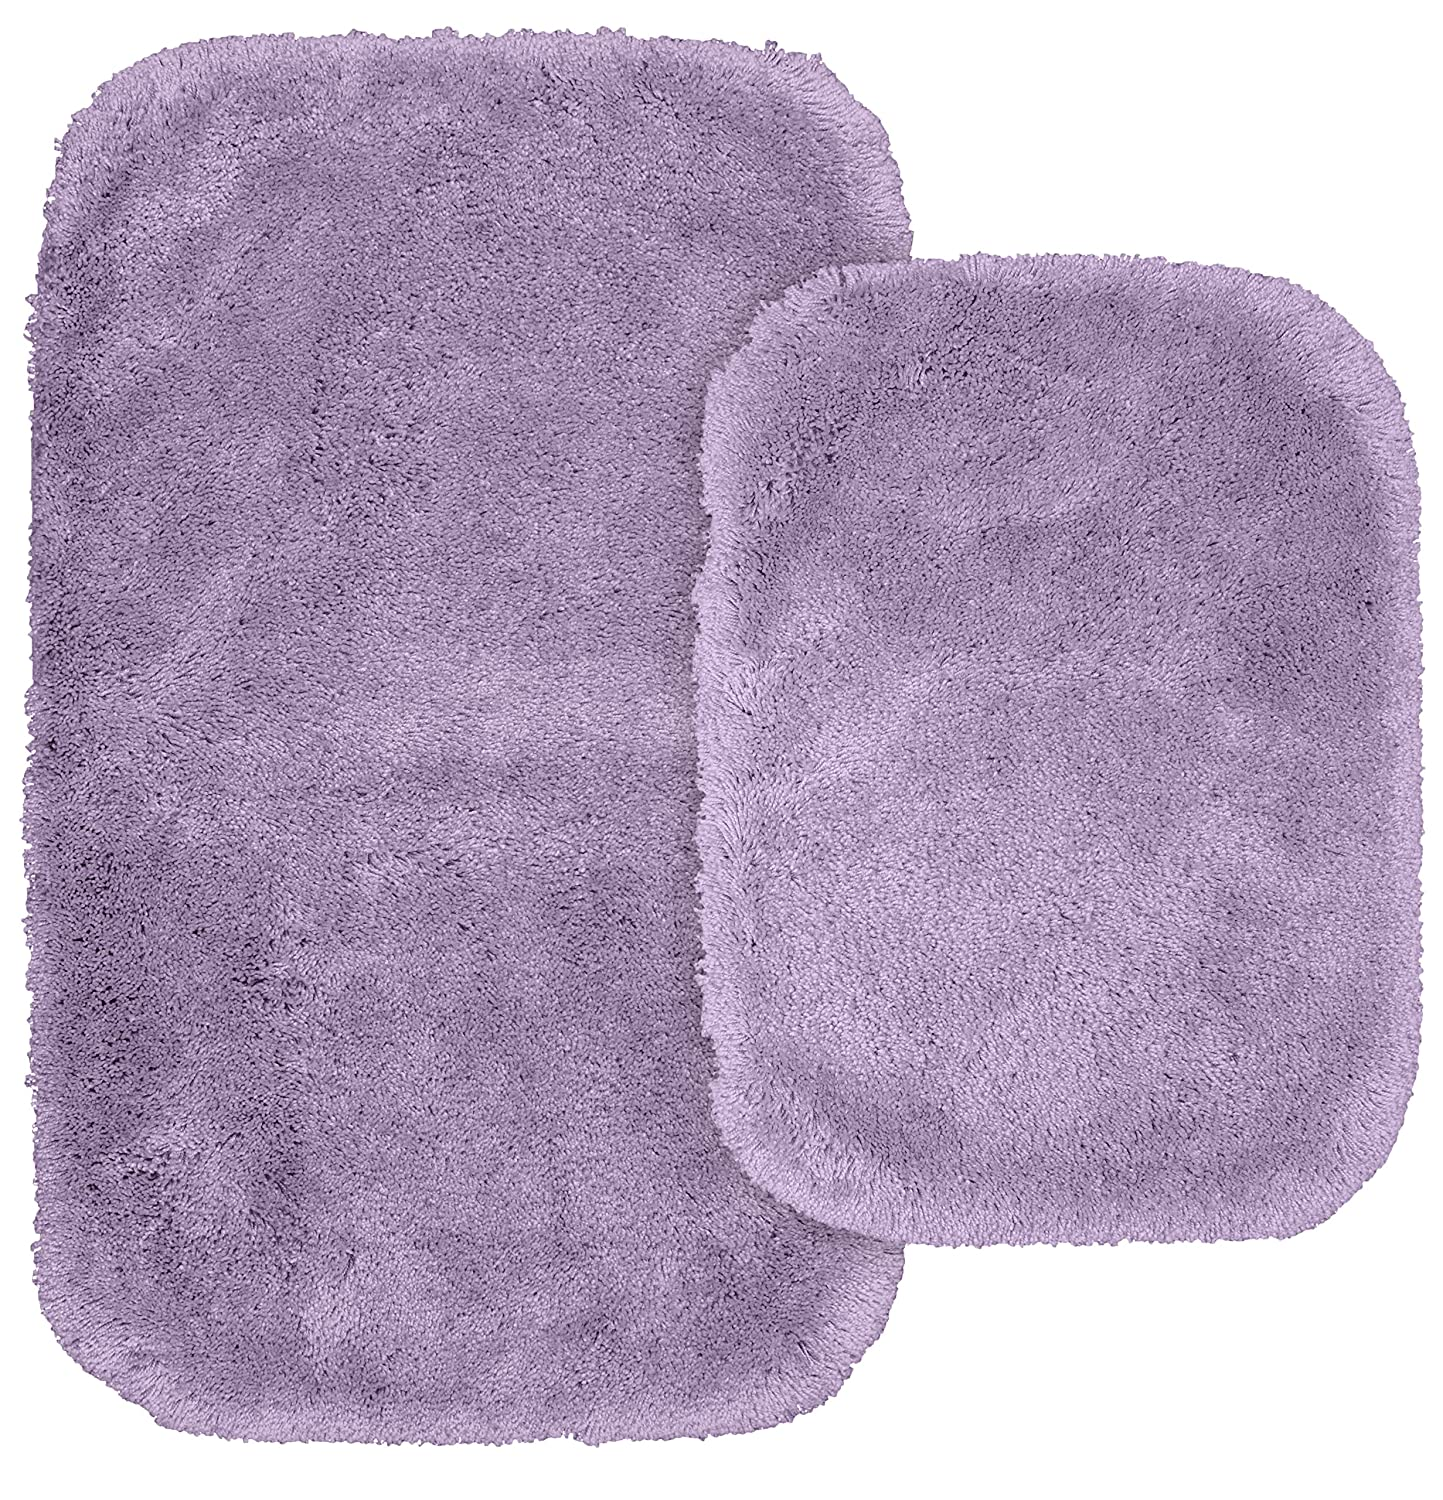 Garland Rug BA130W2P04J1 BA130W2P04I9 Finest Luxury Bath Rug Set, 2-Piece, Purple